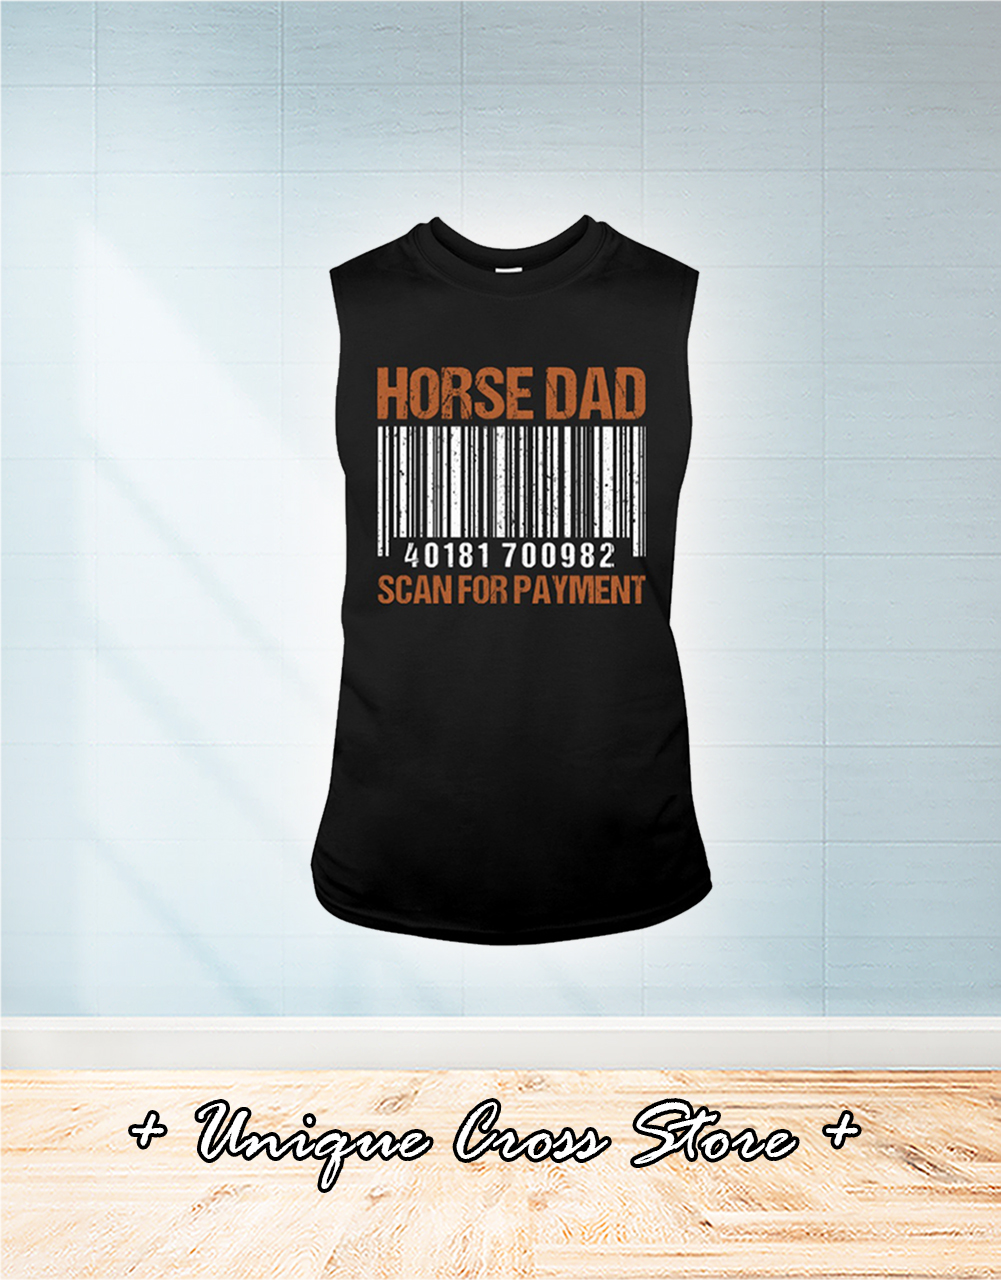 Barcode Horse Dad Scan For Payment tank top